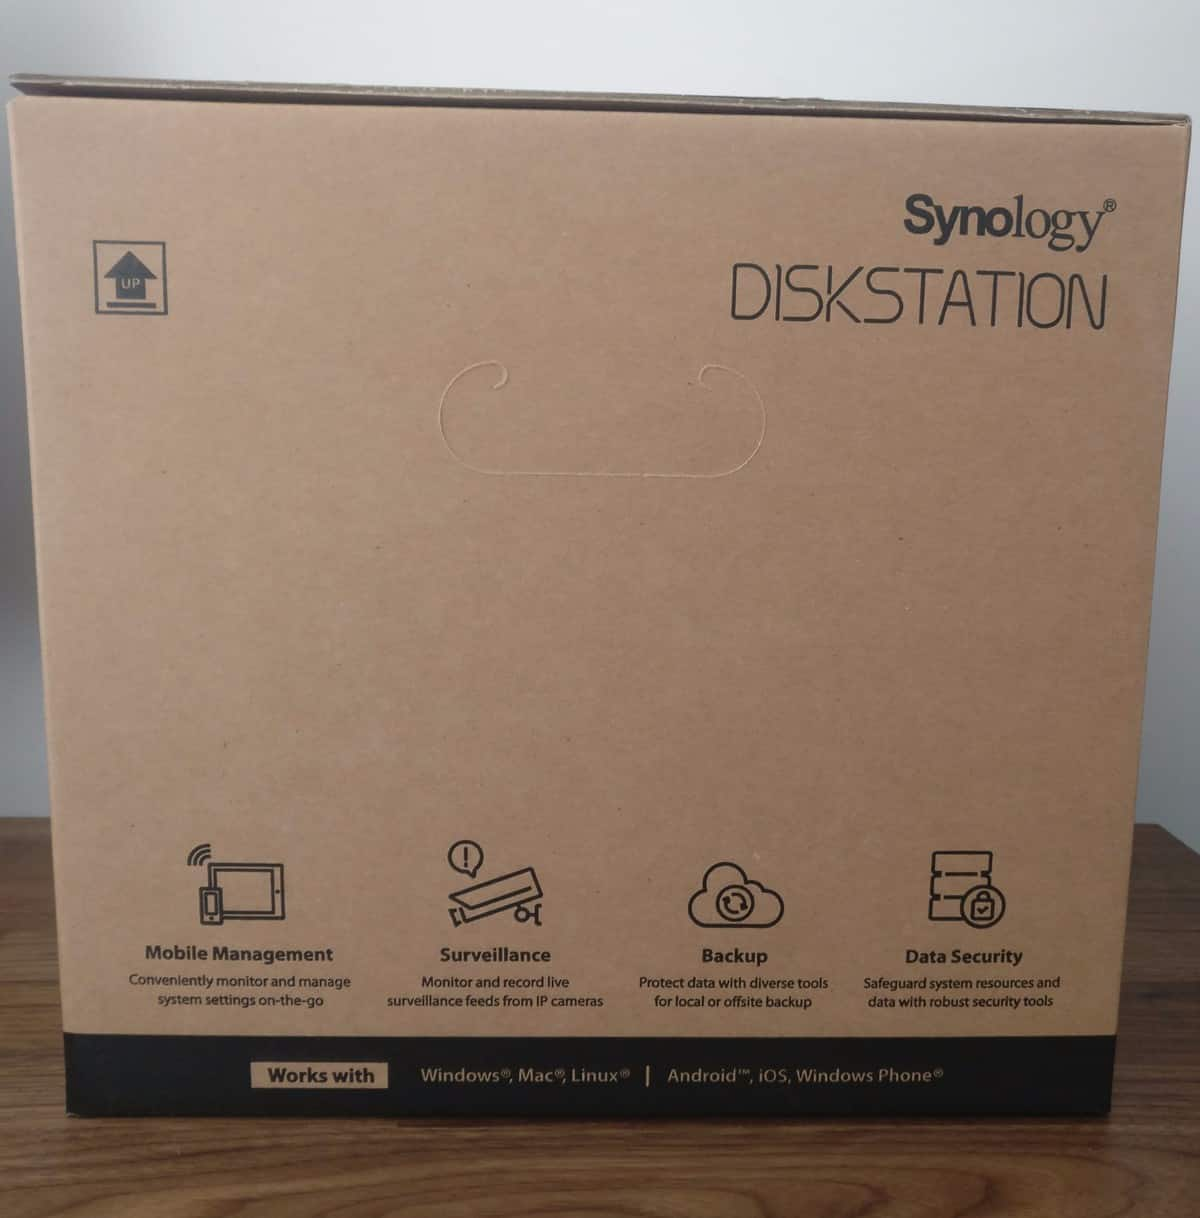 Synology-DS1517-Screens22 Synology DS1517+ 5 Bay NAS Review